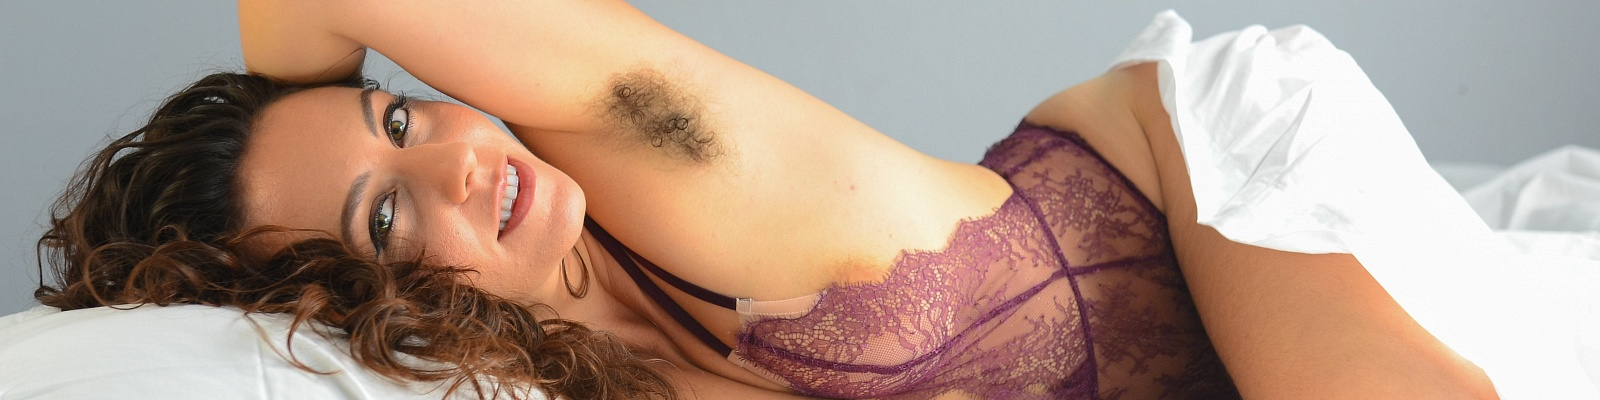 Hairy Nikki Silver's Cover Photo